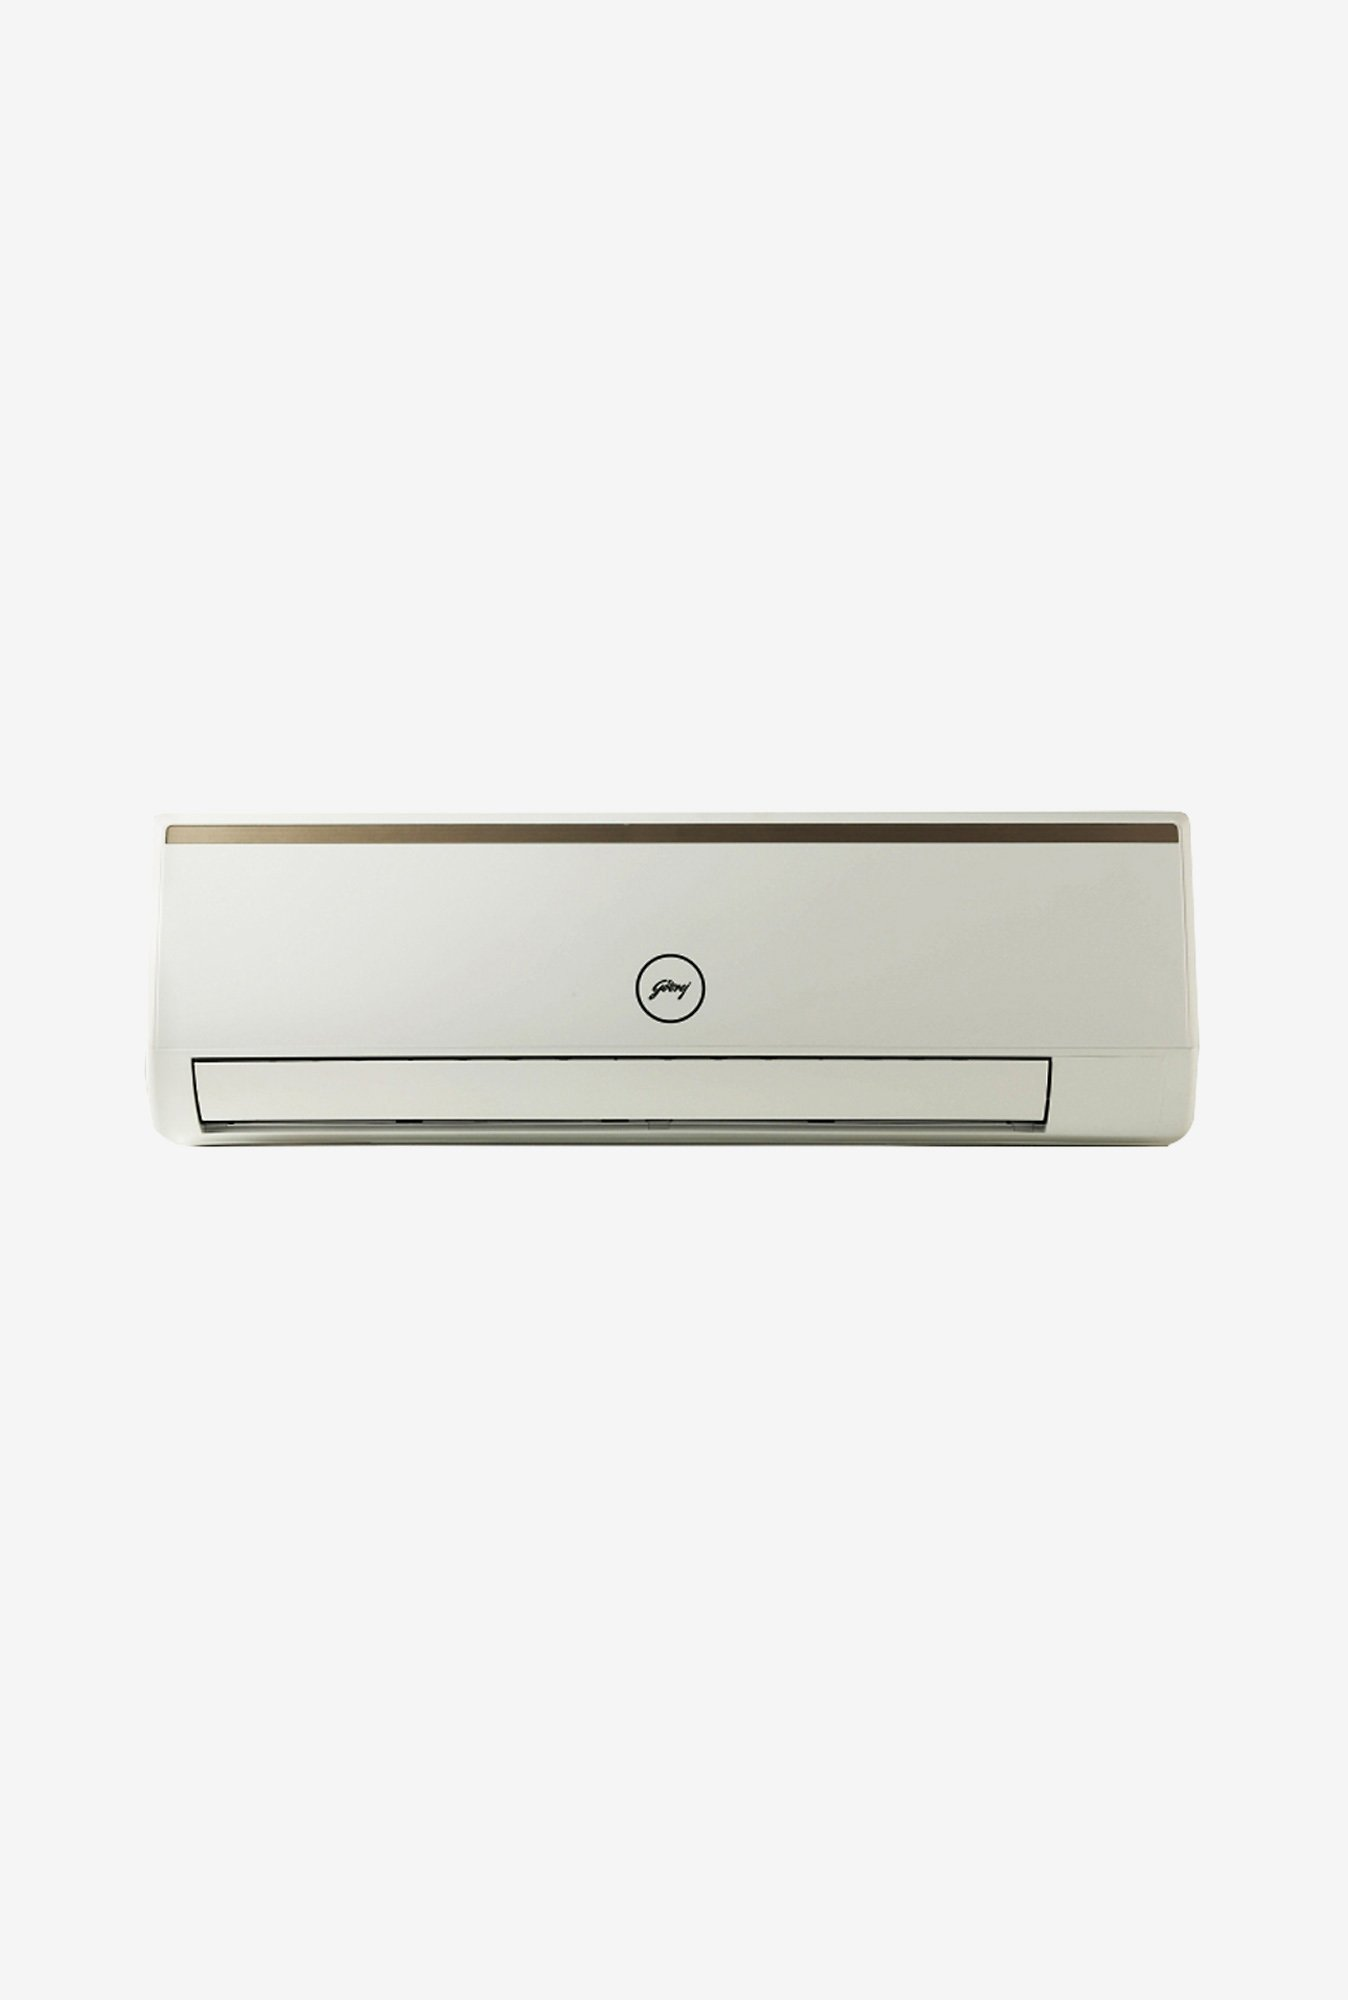 Godrej GSC 12 TSZ 5 RWPT 1 Ton 5 Star (2017) Split AC Copper White